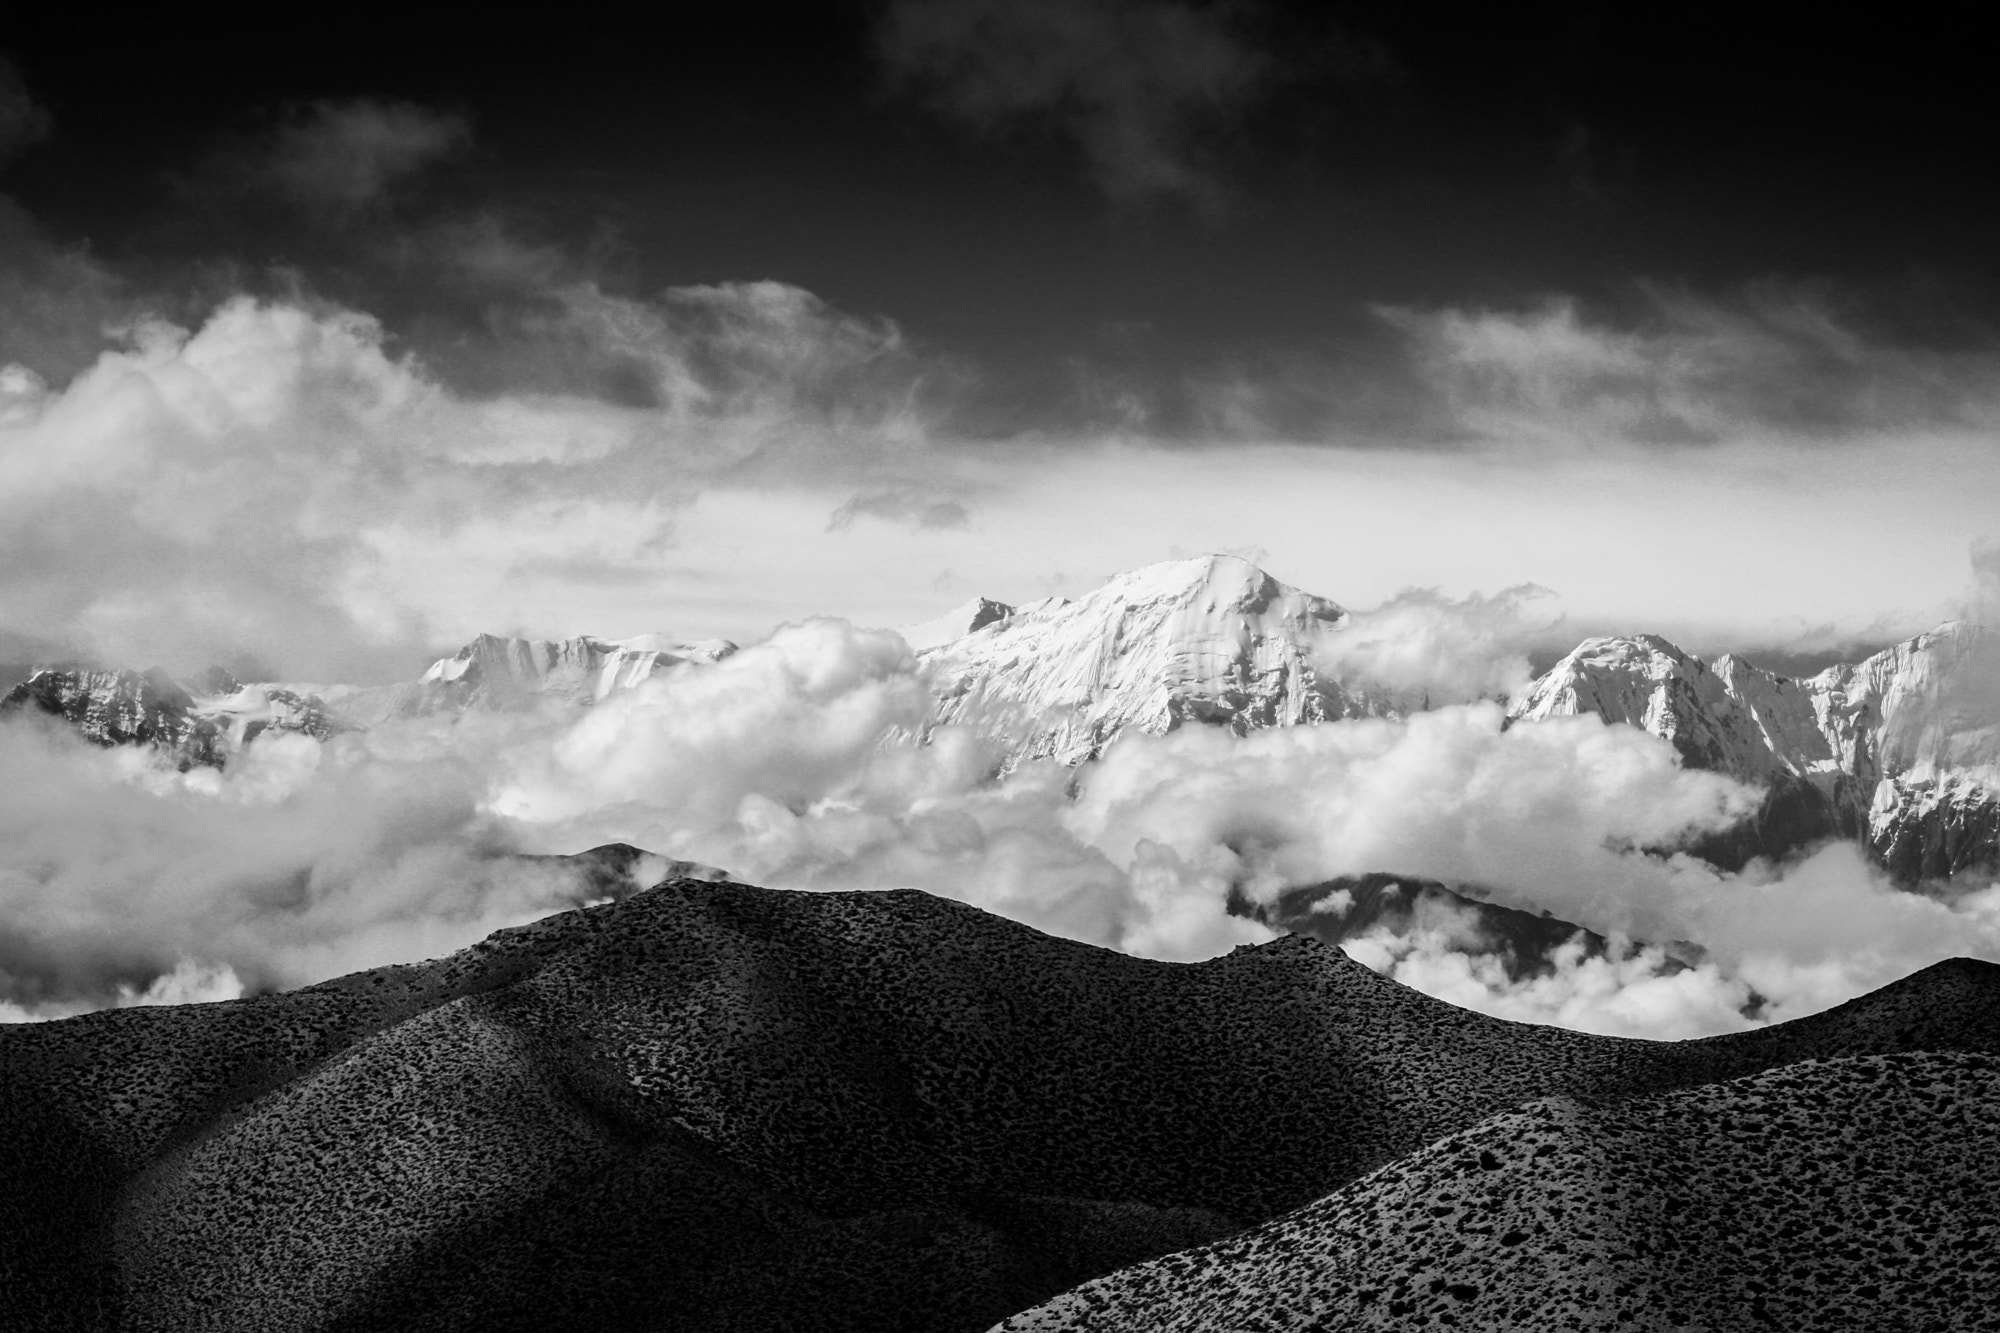 Photograph Tilicho Peak 7135 Meters  by Stefan Traxinger on 500px